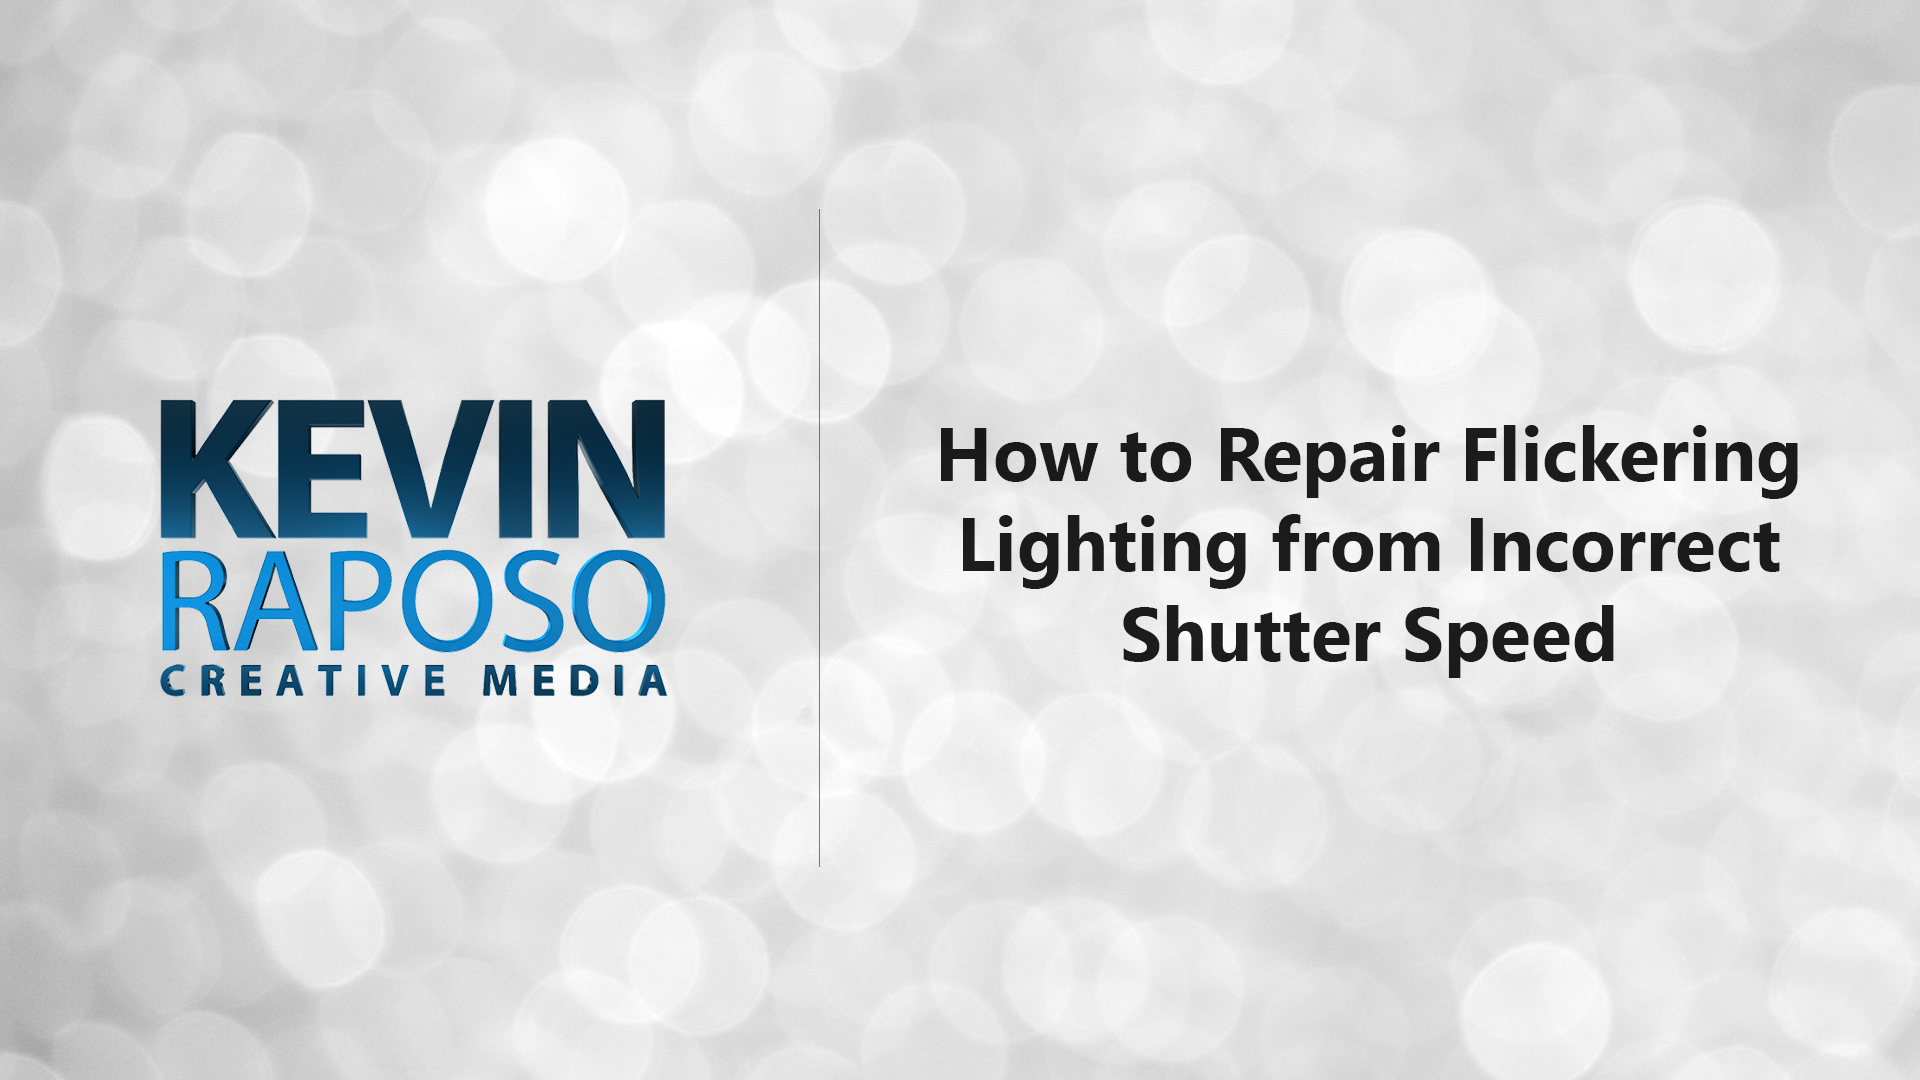 How to Repair Flickering Lighting from Incorrect Shutter Speed